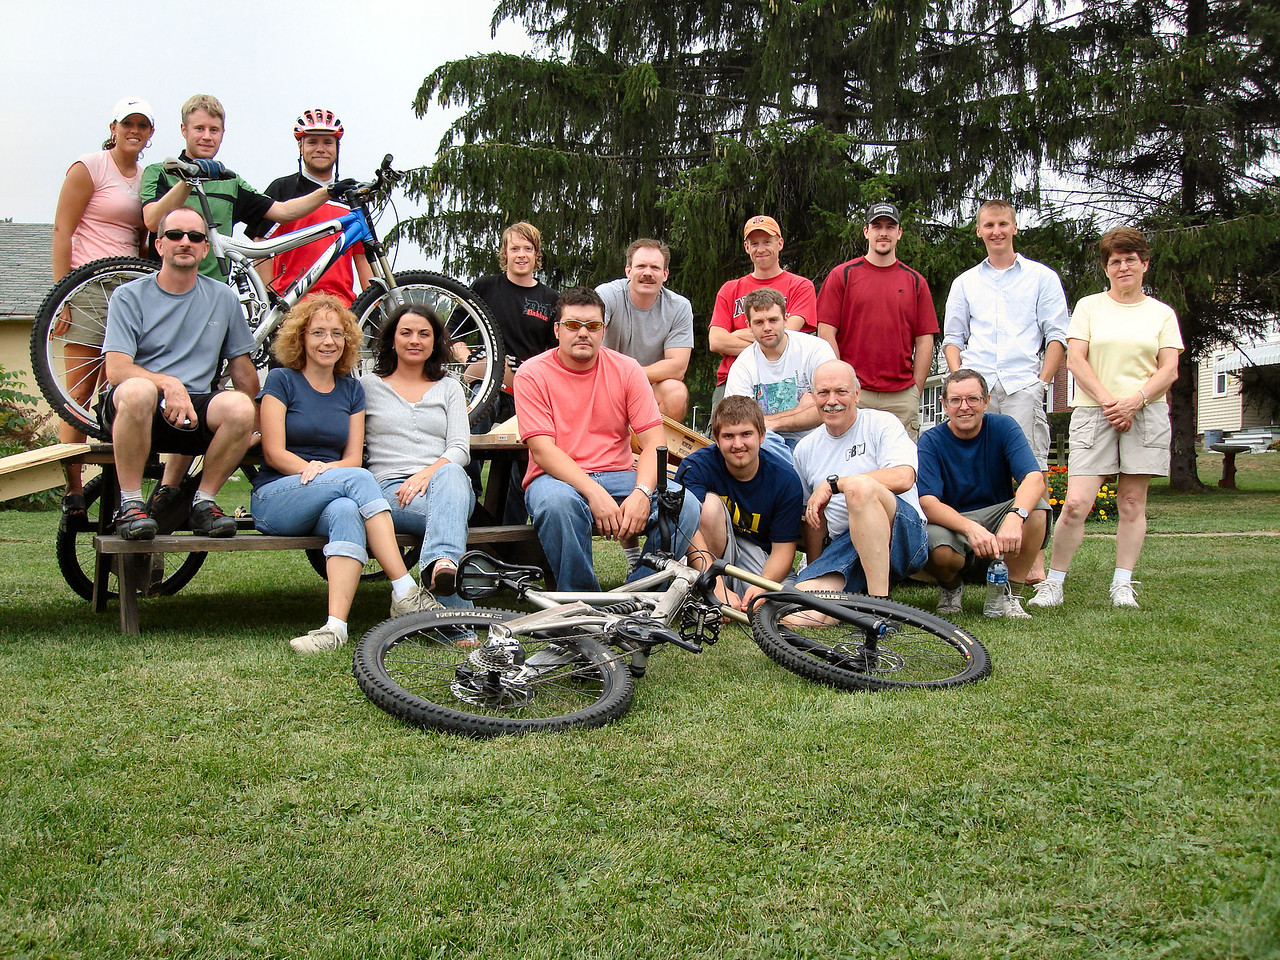 "The 1st annual ""Single Track Minds"" party by the Ancient One & Edie @ their Mtn Bike Terrain Park.<br /> The gorgeous & handsome participants are: Alison, Matt, Darryl, Troy, Angie, Jen, Rick, Harry, Robby, Josh, Don, Kevin, The Ancient One, Dolan, Brian, Ray, & Edie."